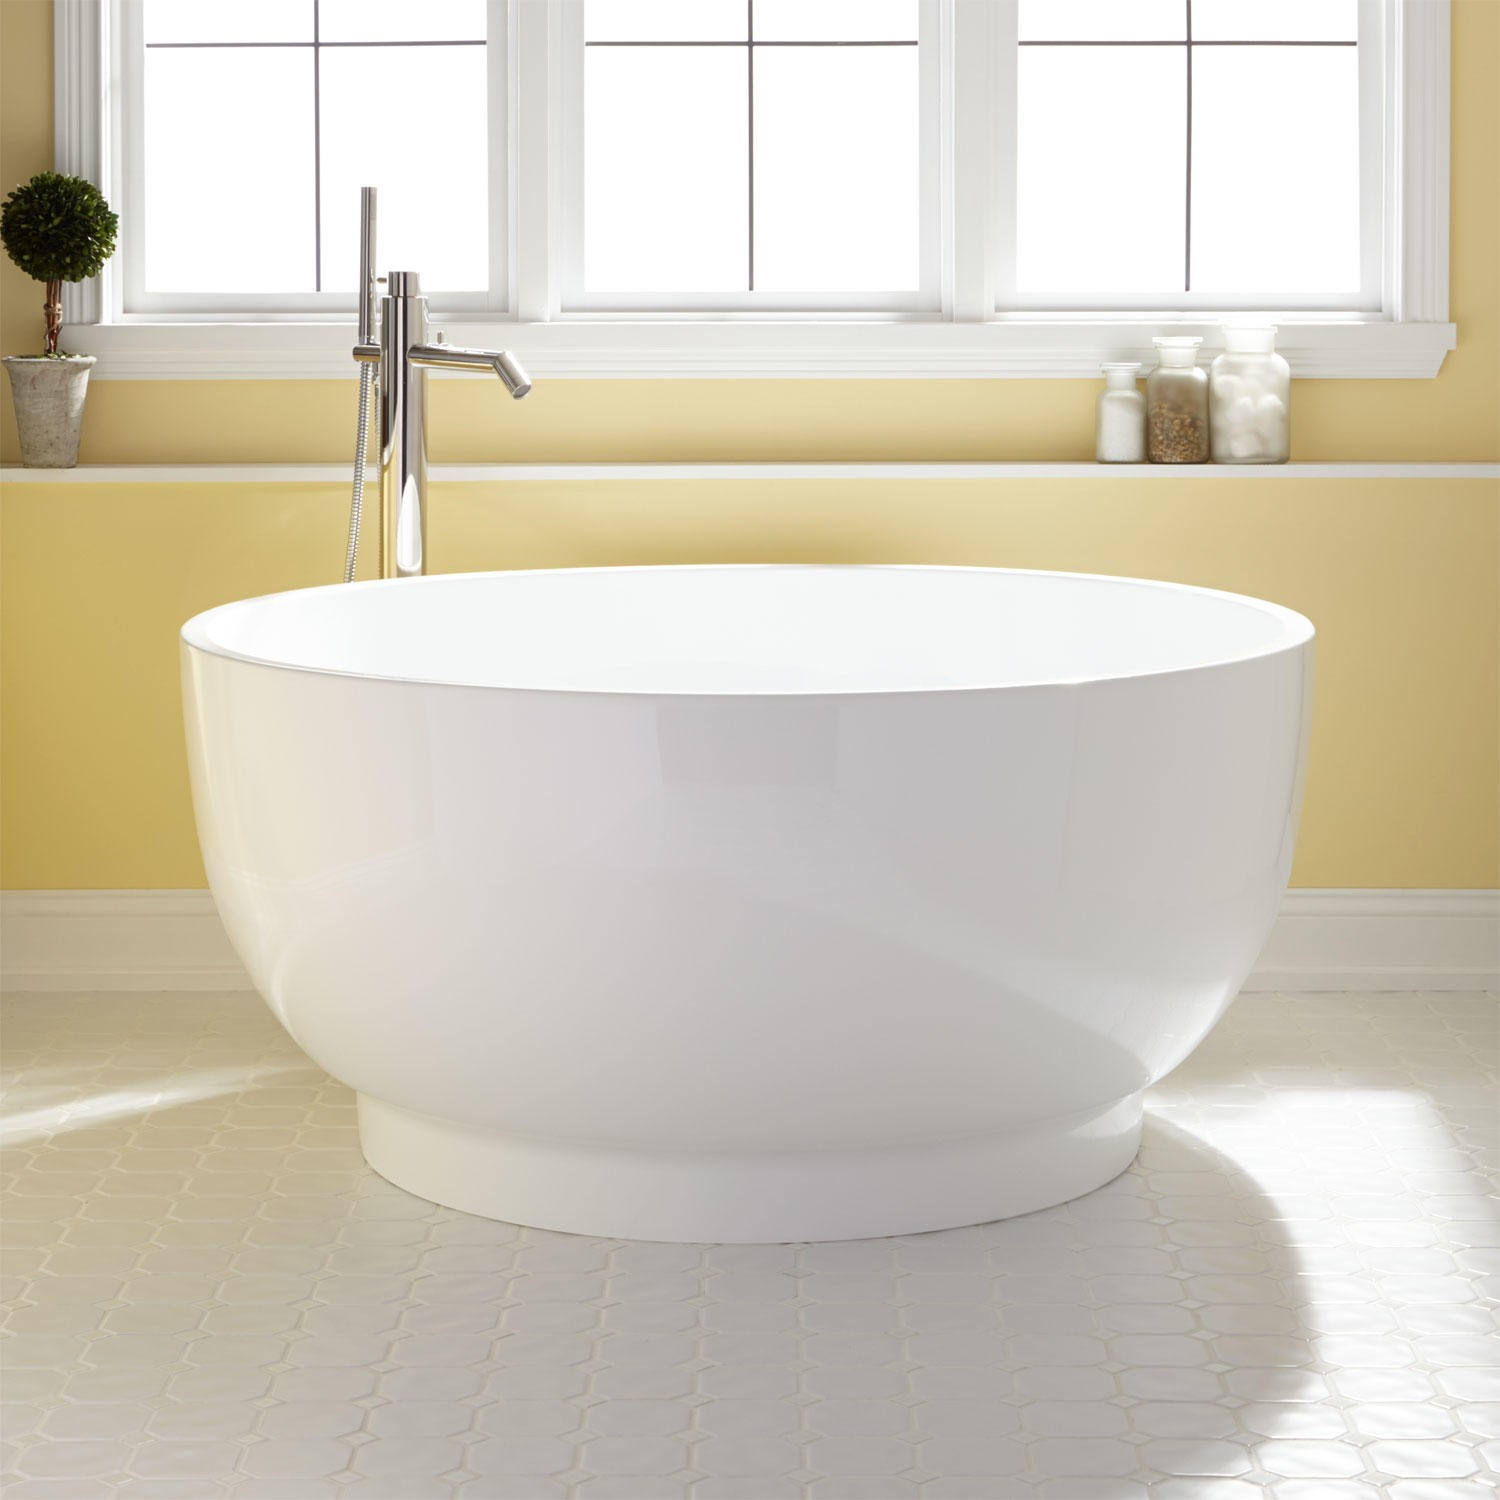 soaker tub love luxurious tubs spa tubs bathtubs bath tubs bathroom